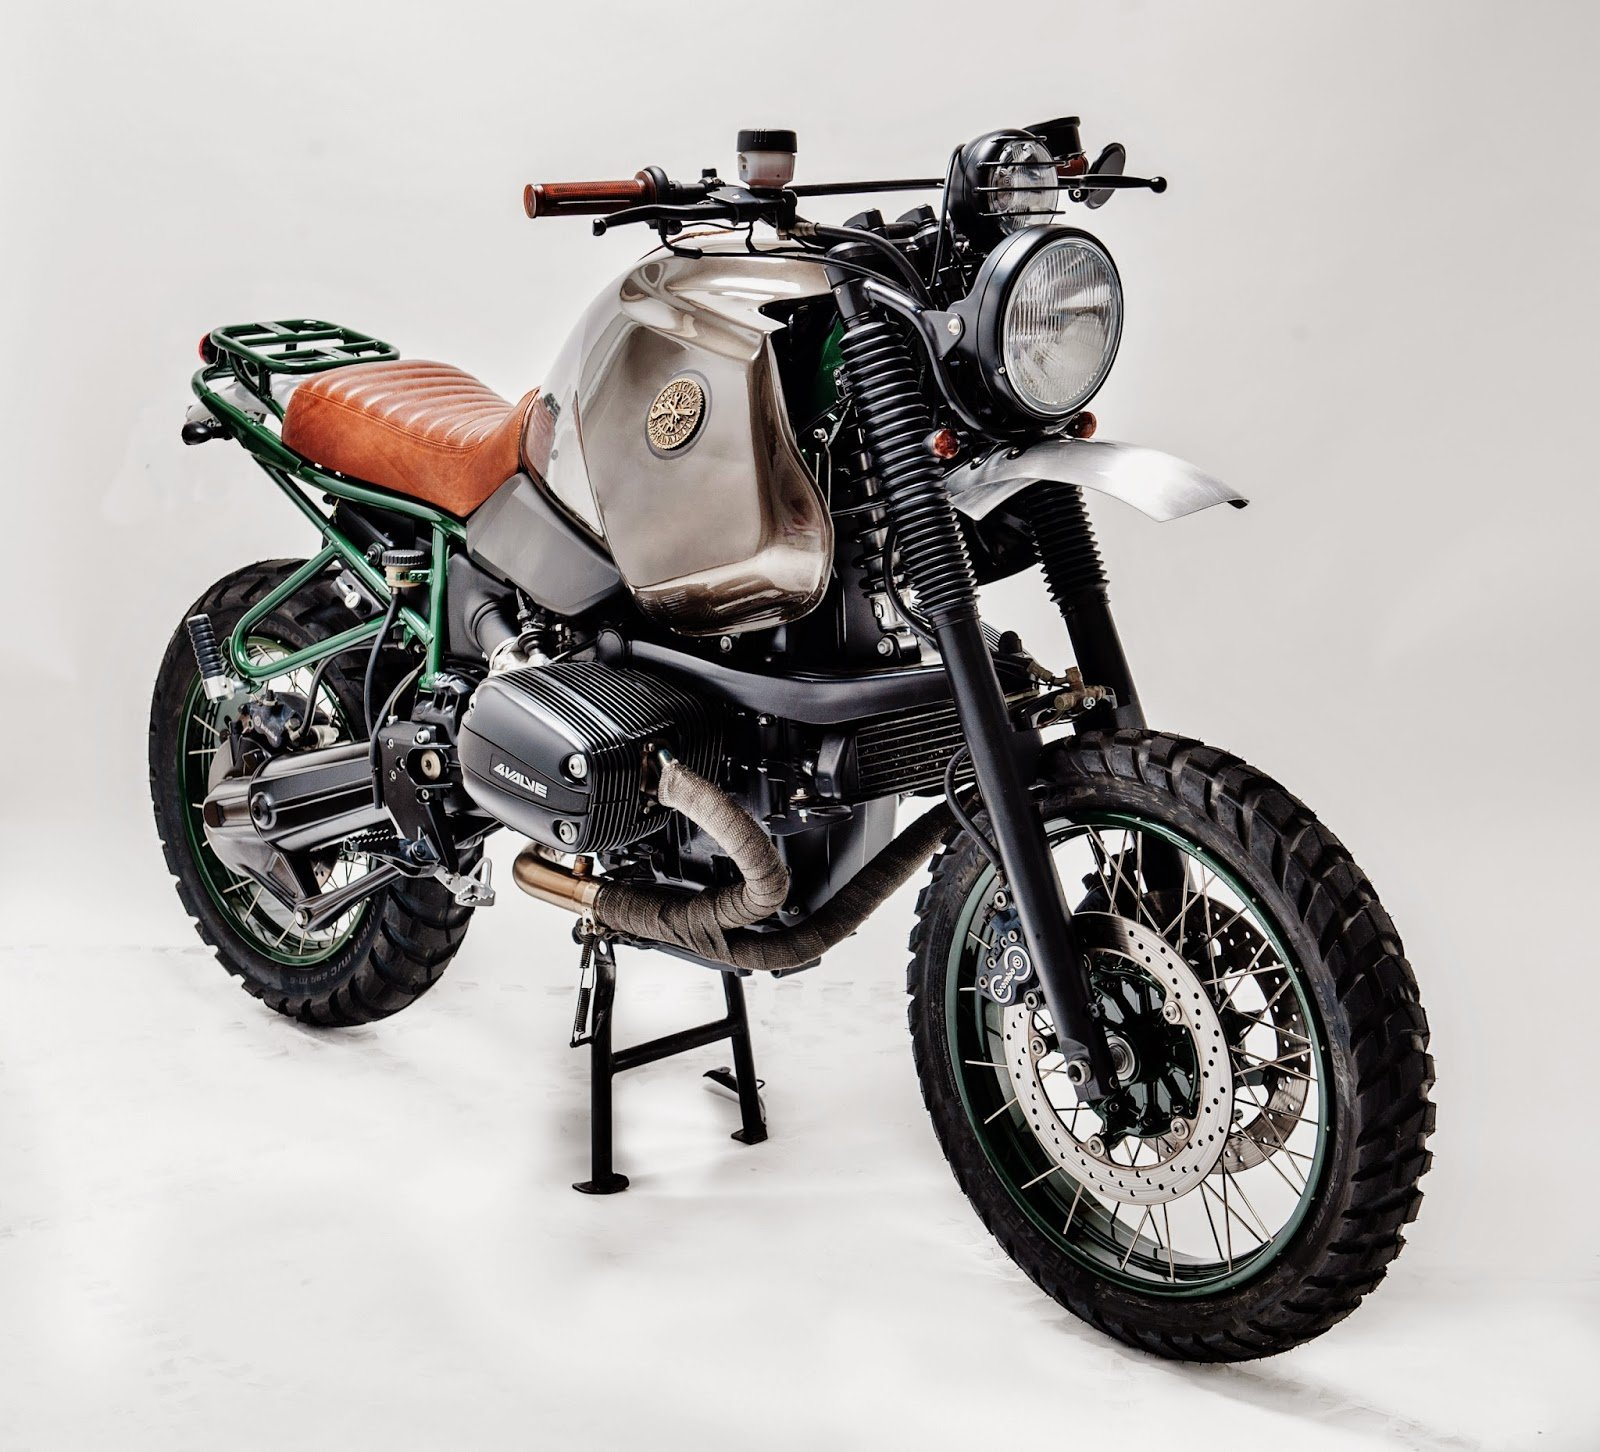 Buldozzer Officine Sbrannetti S Custom Build Of A Bmw